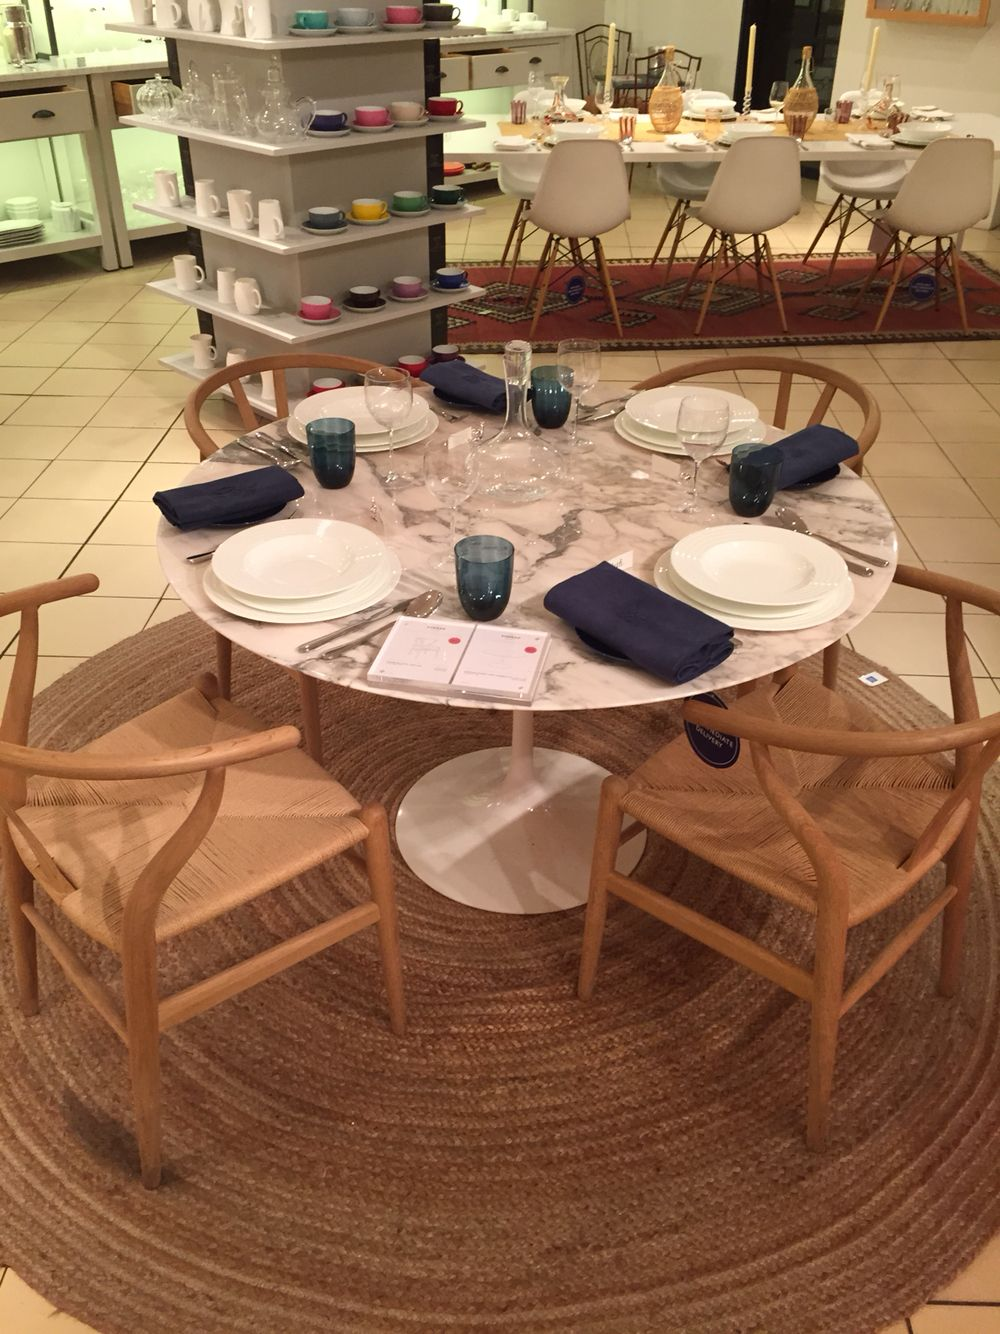 The chair round chair by hans wegner - Wishbone Chairs By Hans Wegner Soap Oak Saarinen Arabescato Table White Marble Round